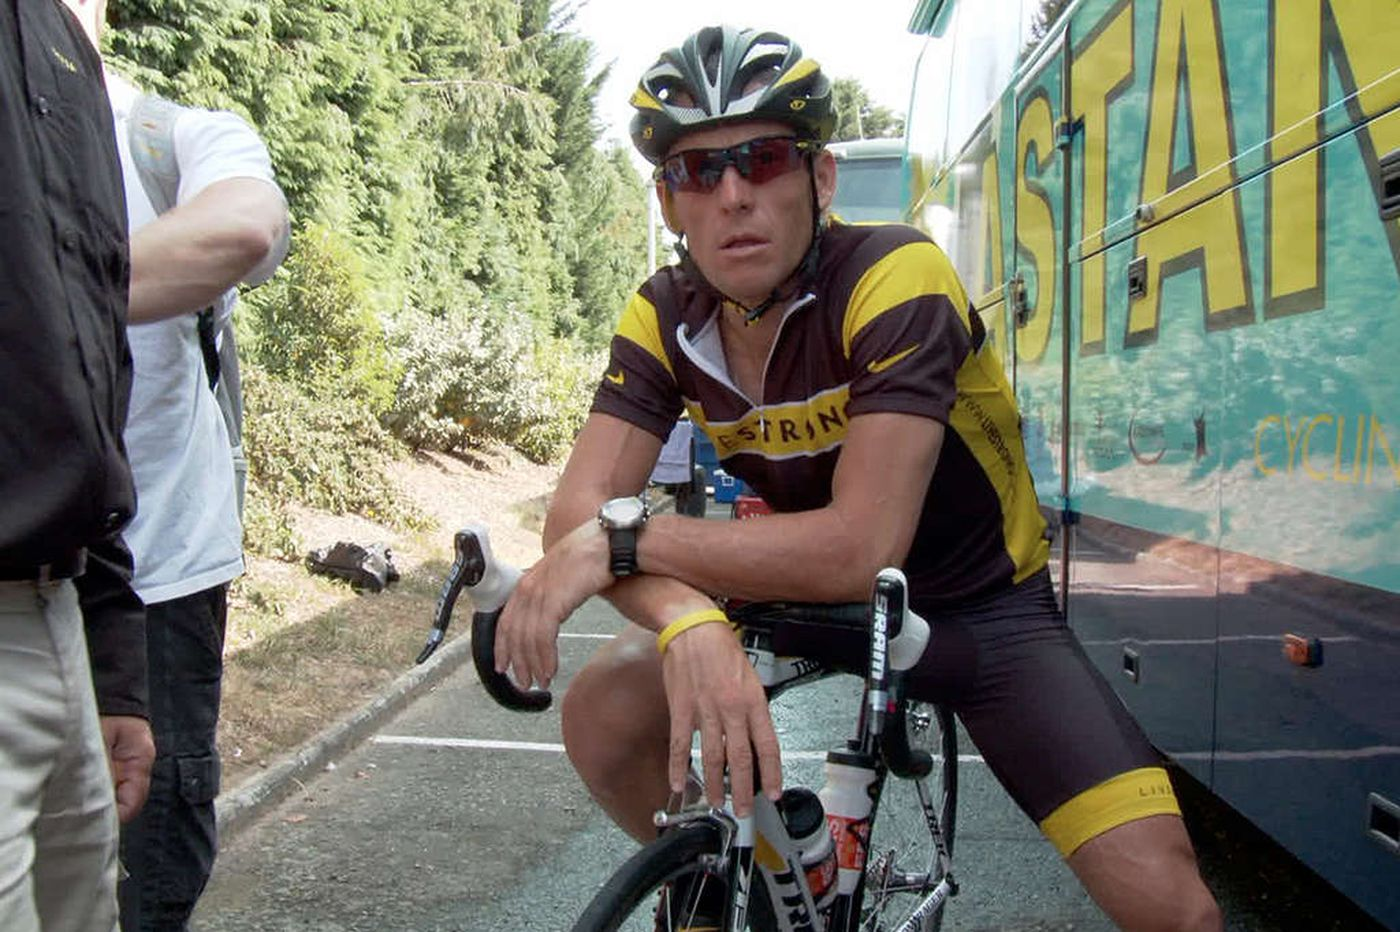 NBCSN to air 30-minute interview with Lance Armstrong